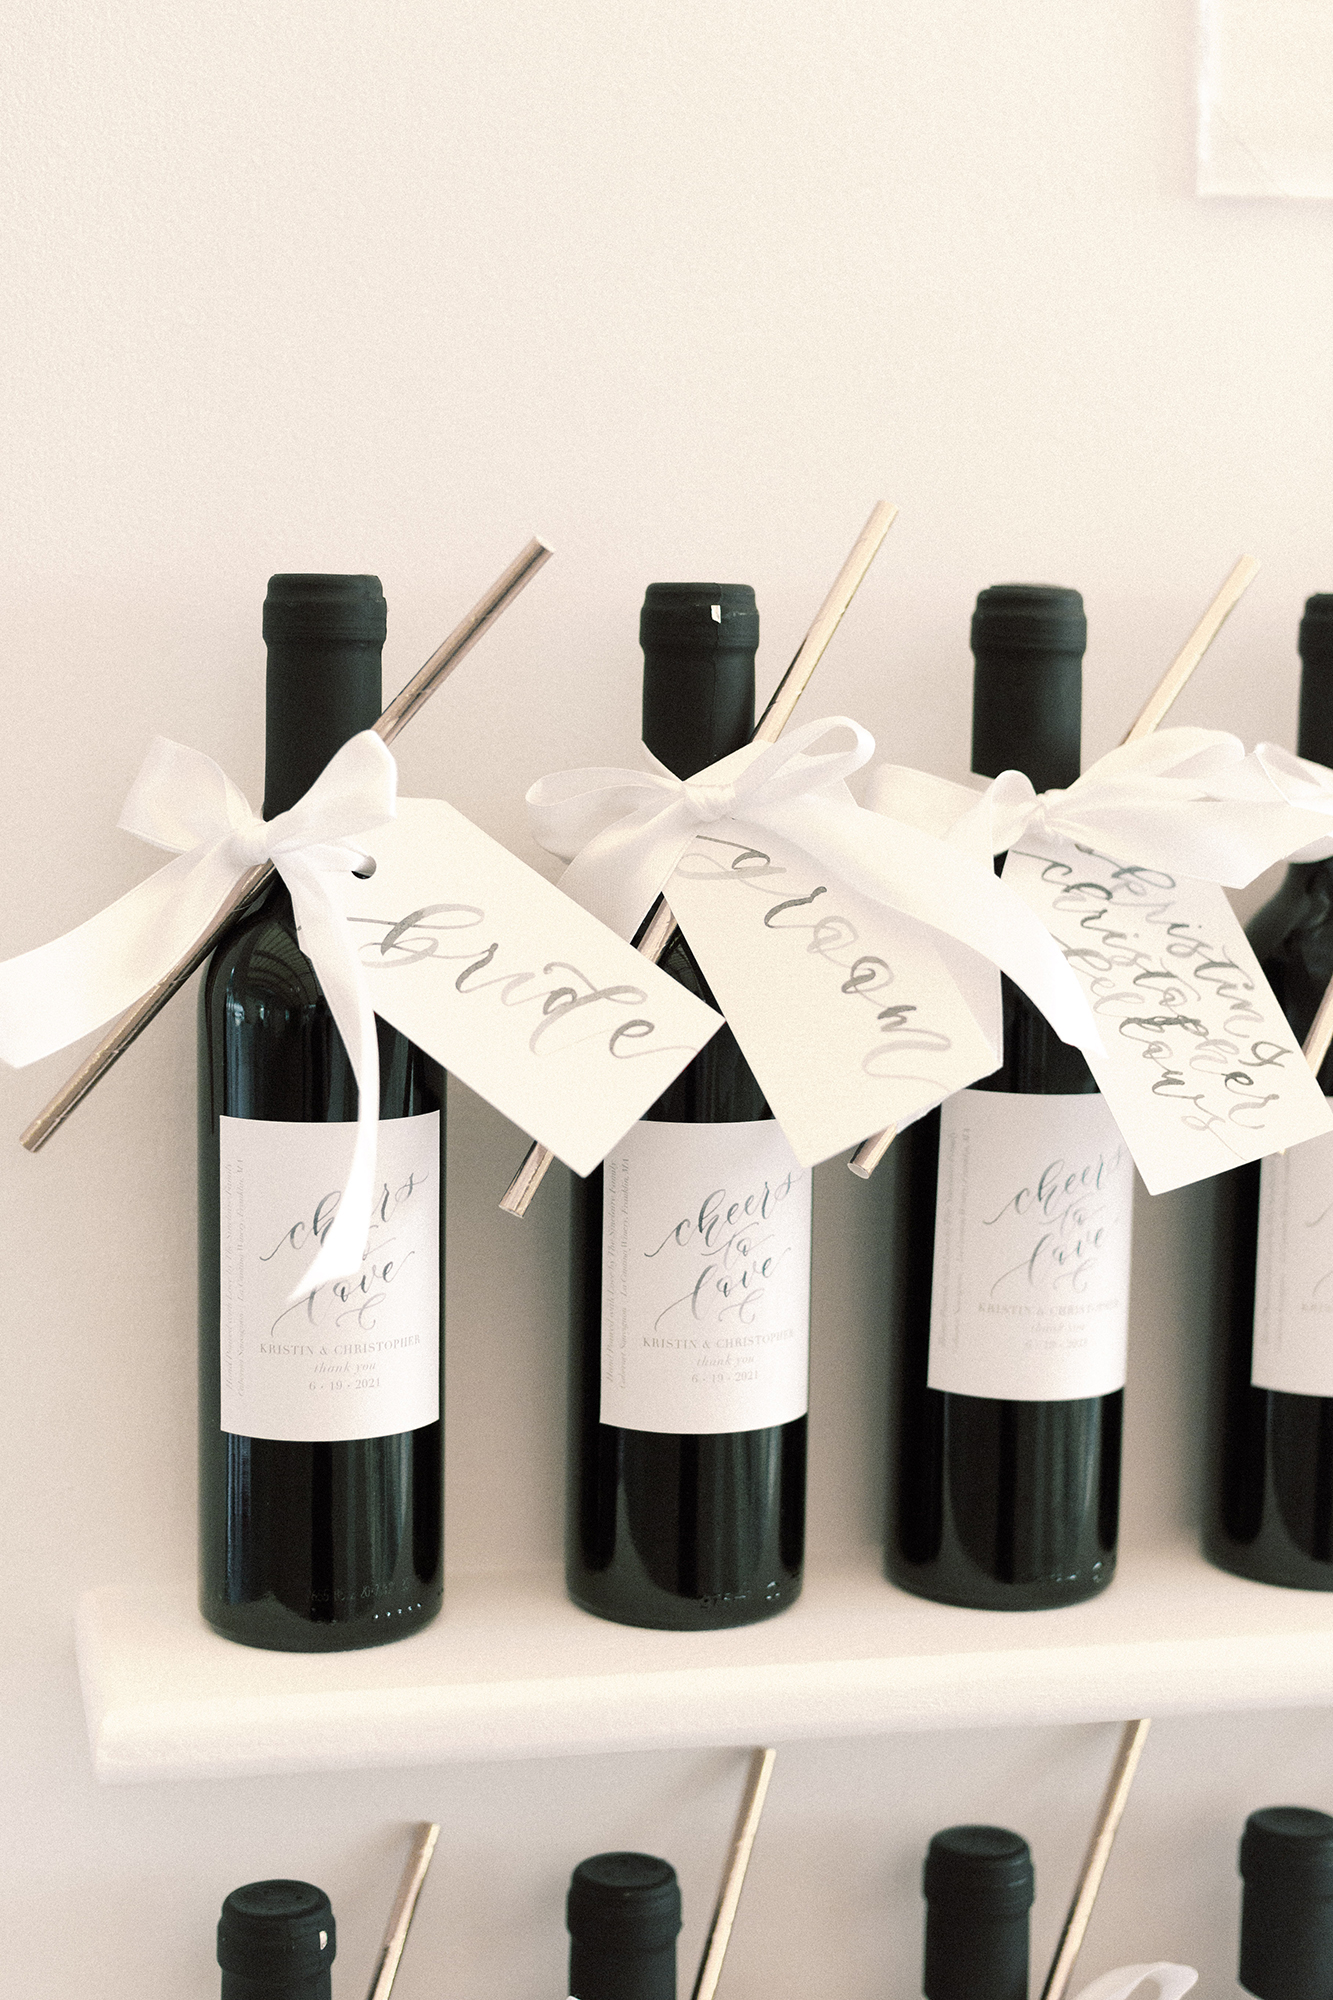 Wine Bottle Seating Chart Display with Name Tags